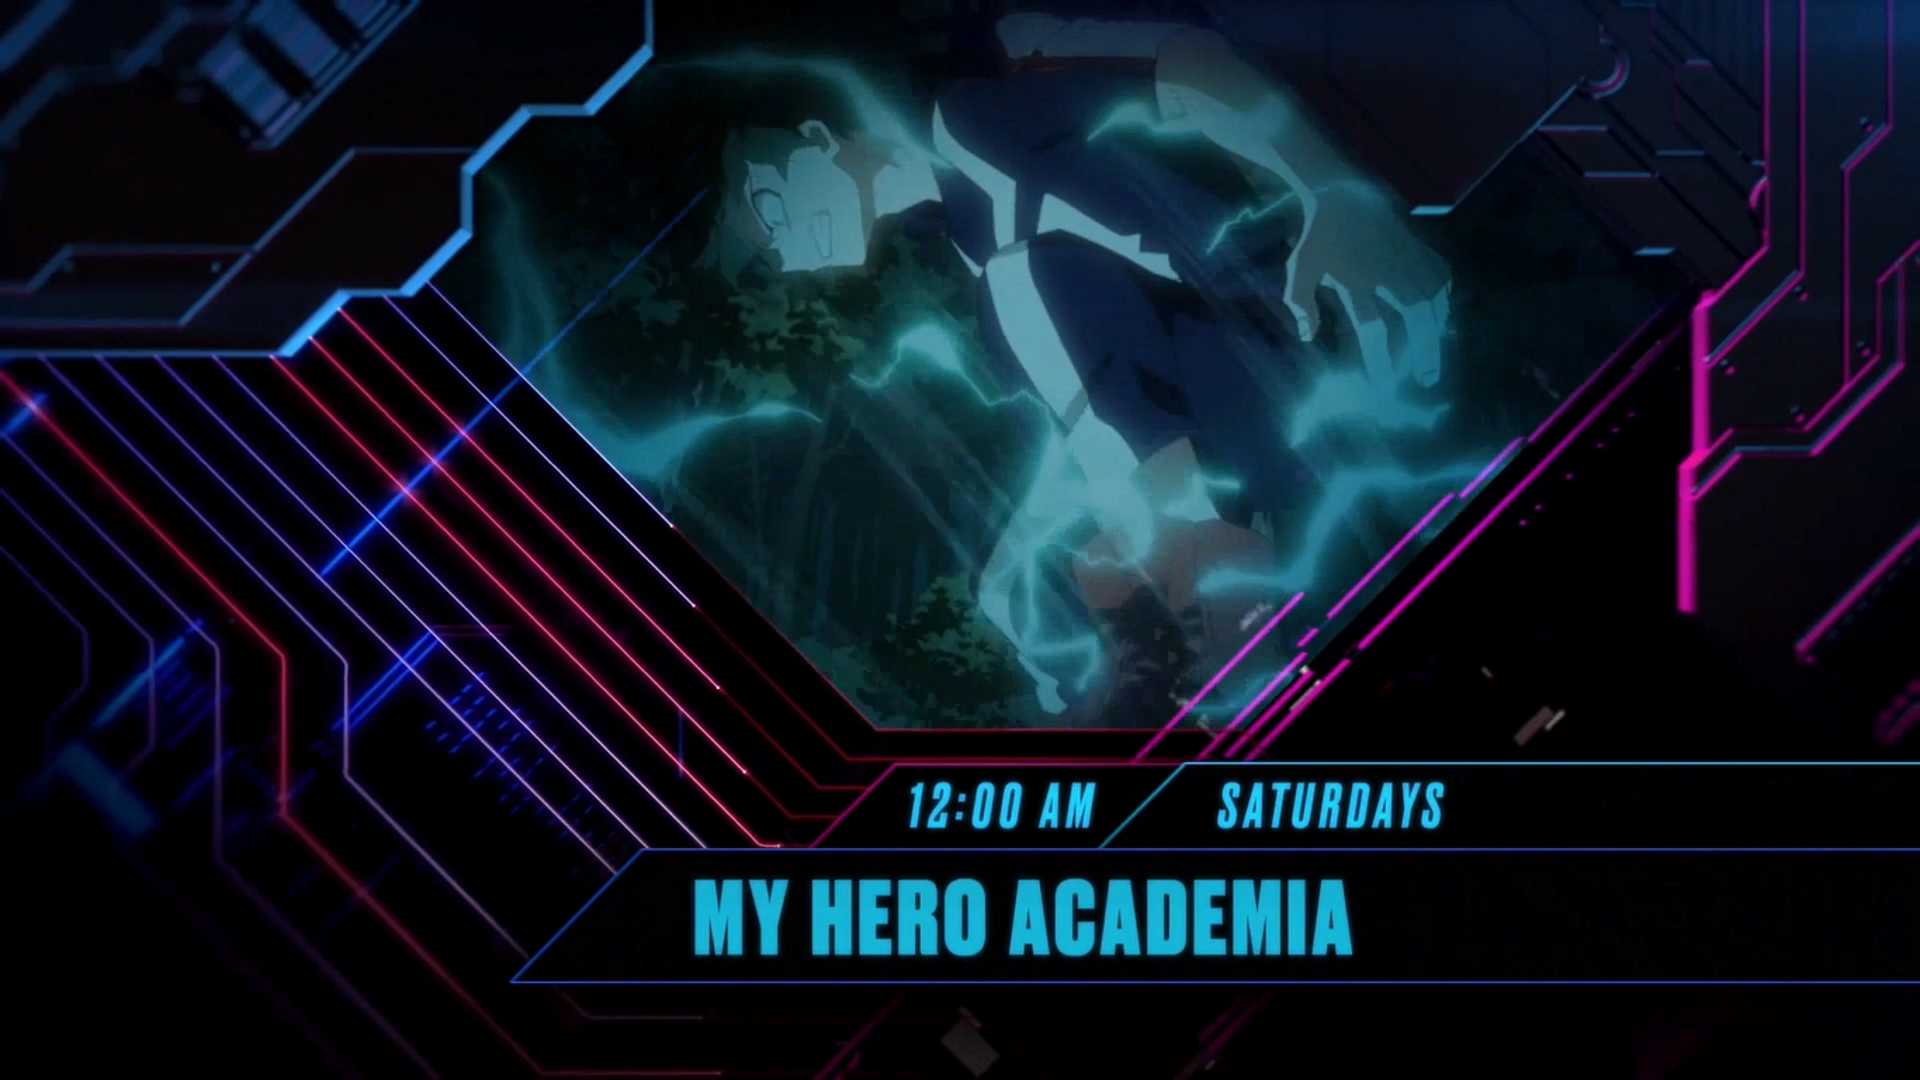 Toonami Airs New Sustaining Promo for My Hero Academia